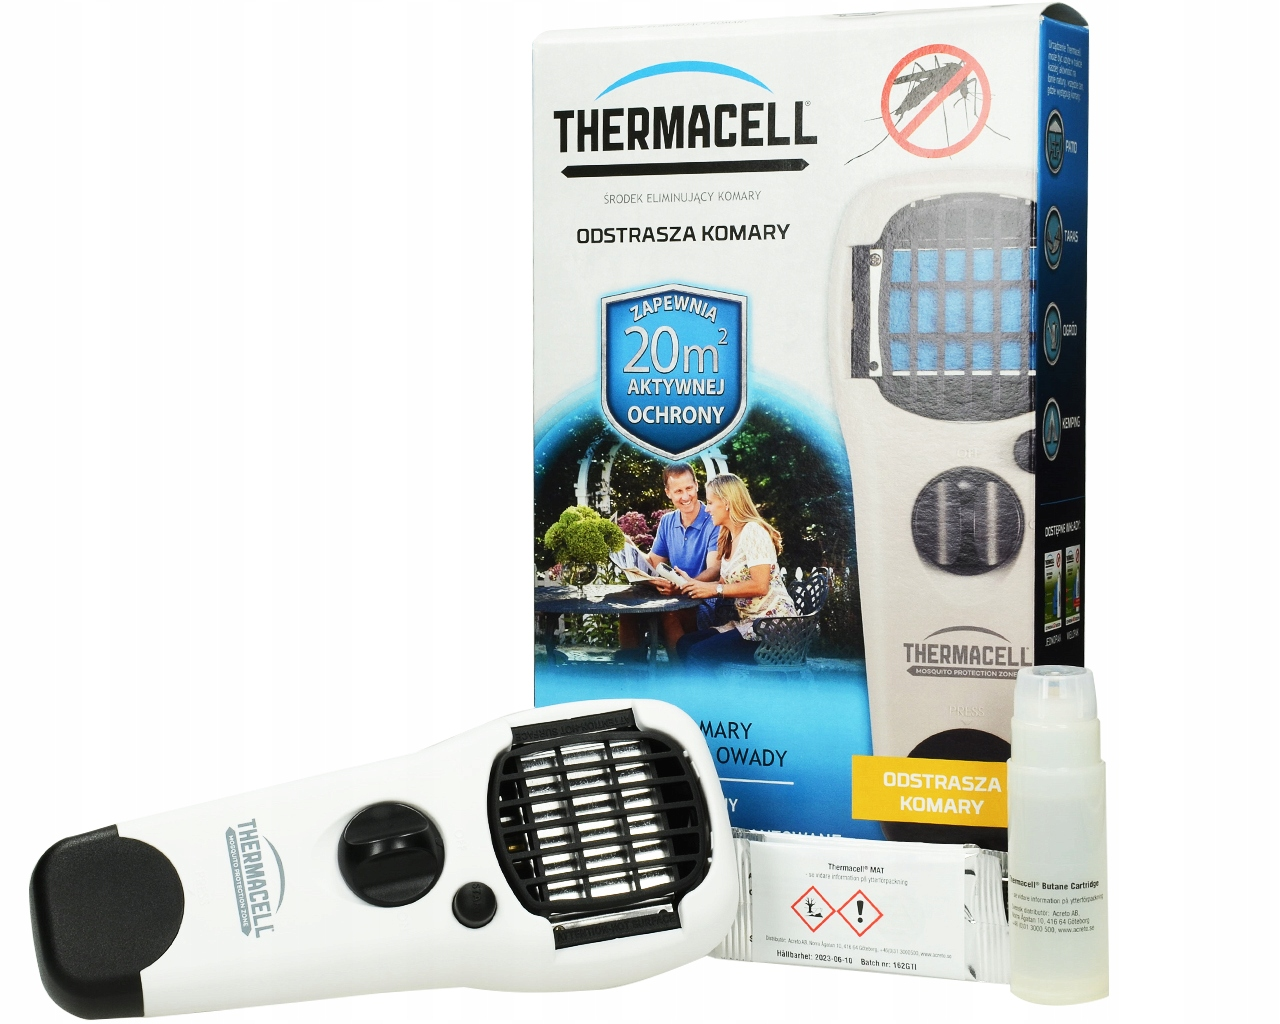 ZARIADENIE MOSQUITO REPELLER THERMACELL MR150